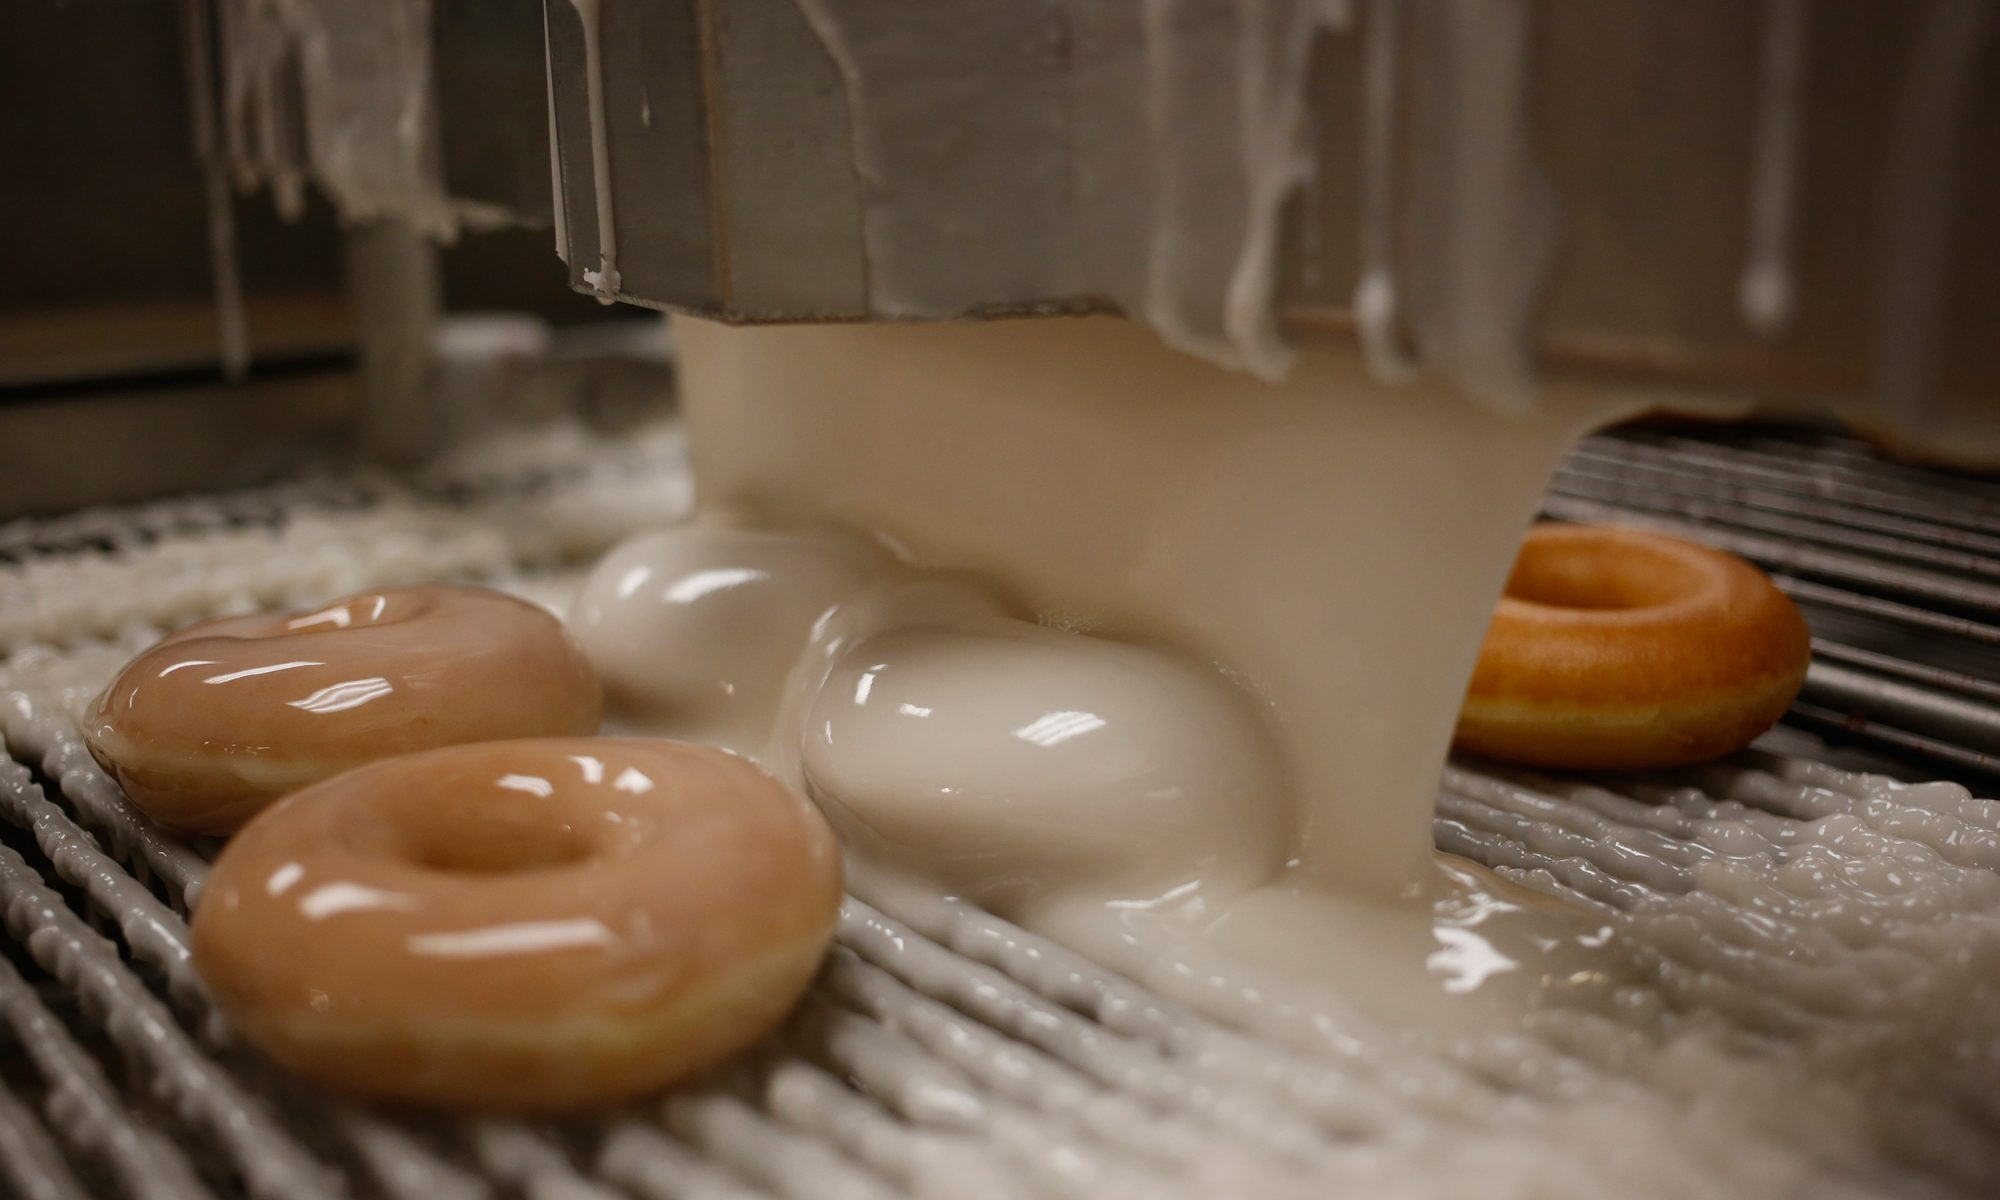 EC: Krispy Kreme Is Being Sued for Falsely Advertising Doughnut Ingredients